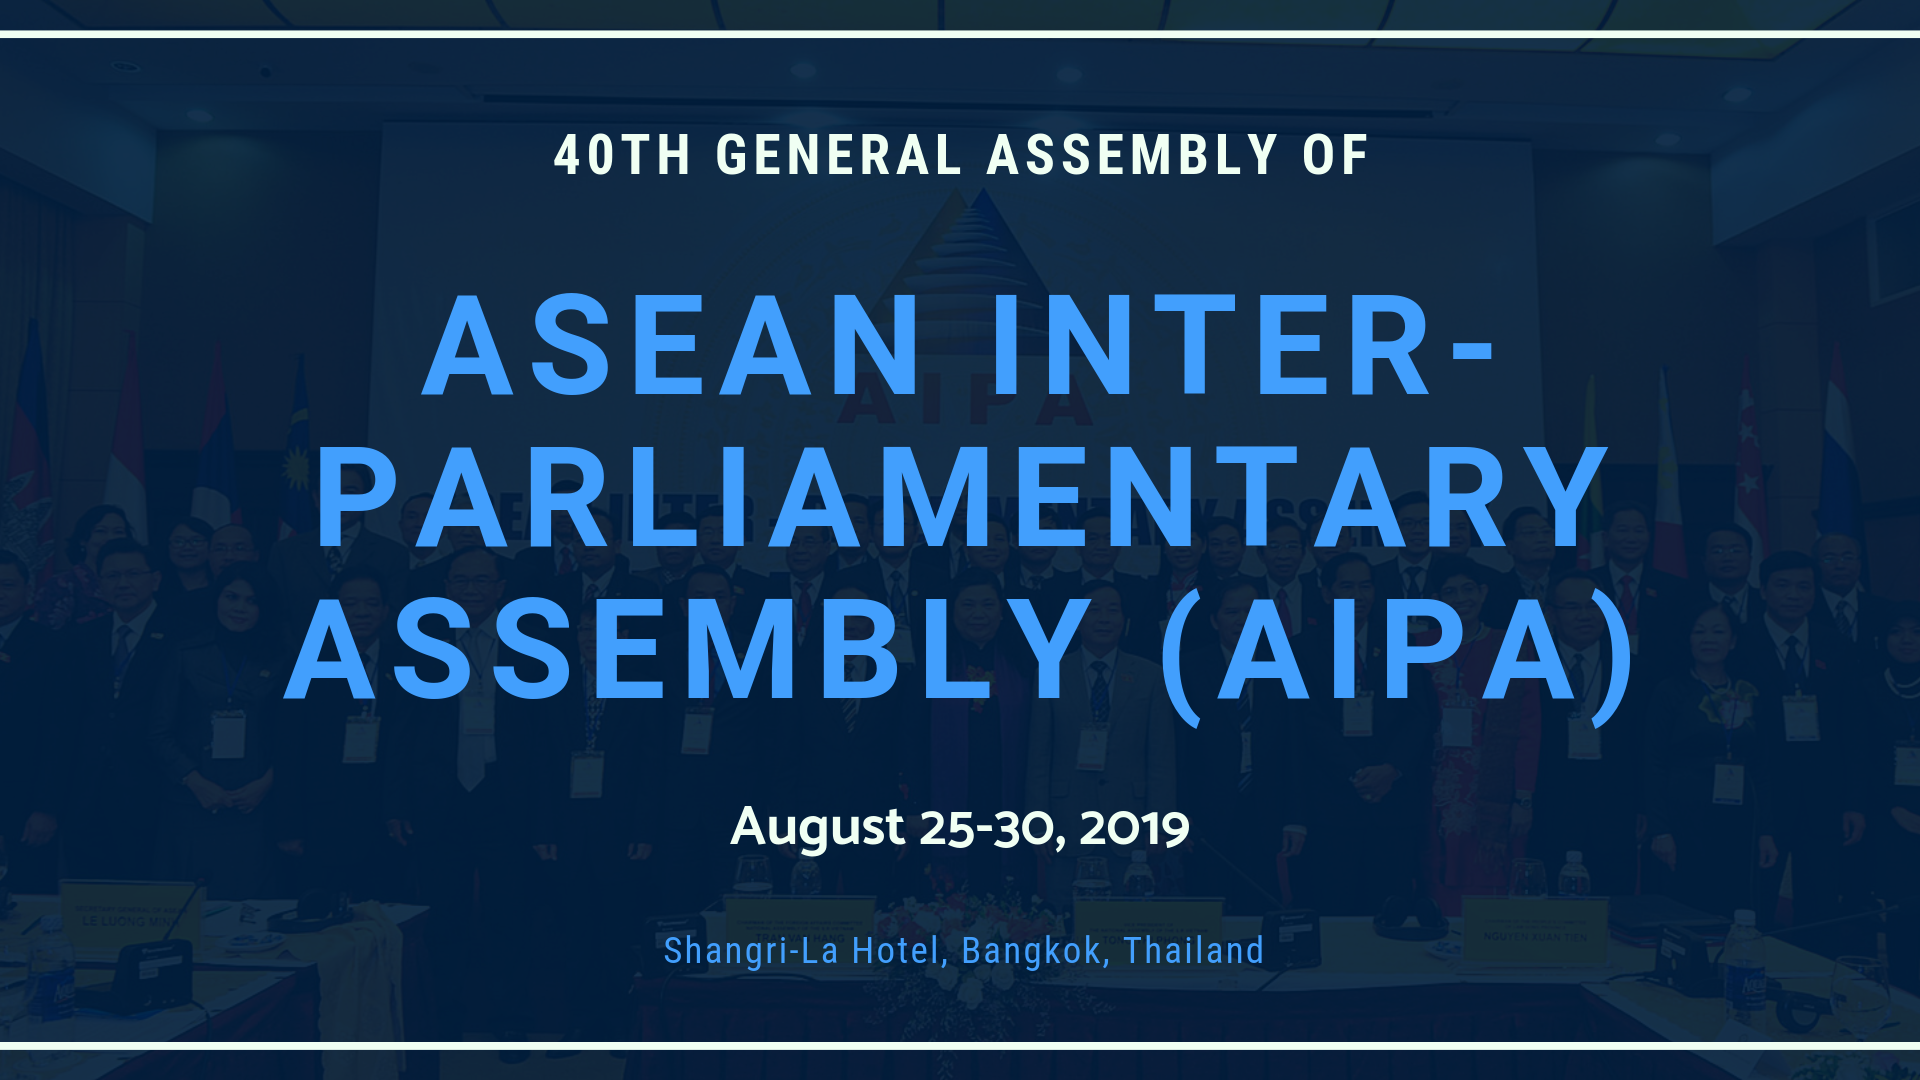 40th General Assembly of the Asian Inter-Parliamentary Assembly (AIPA)